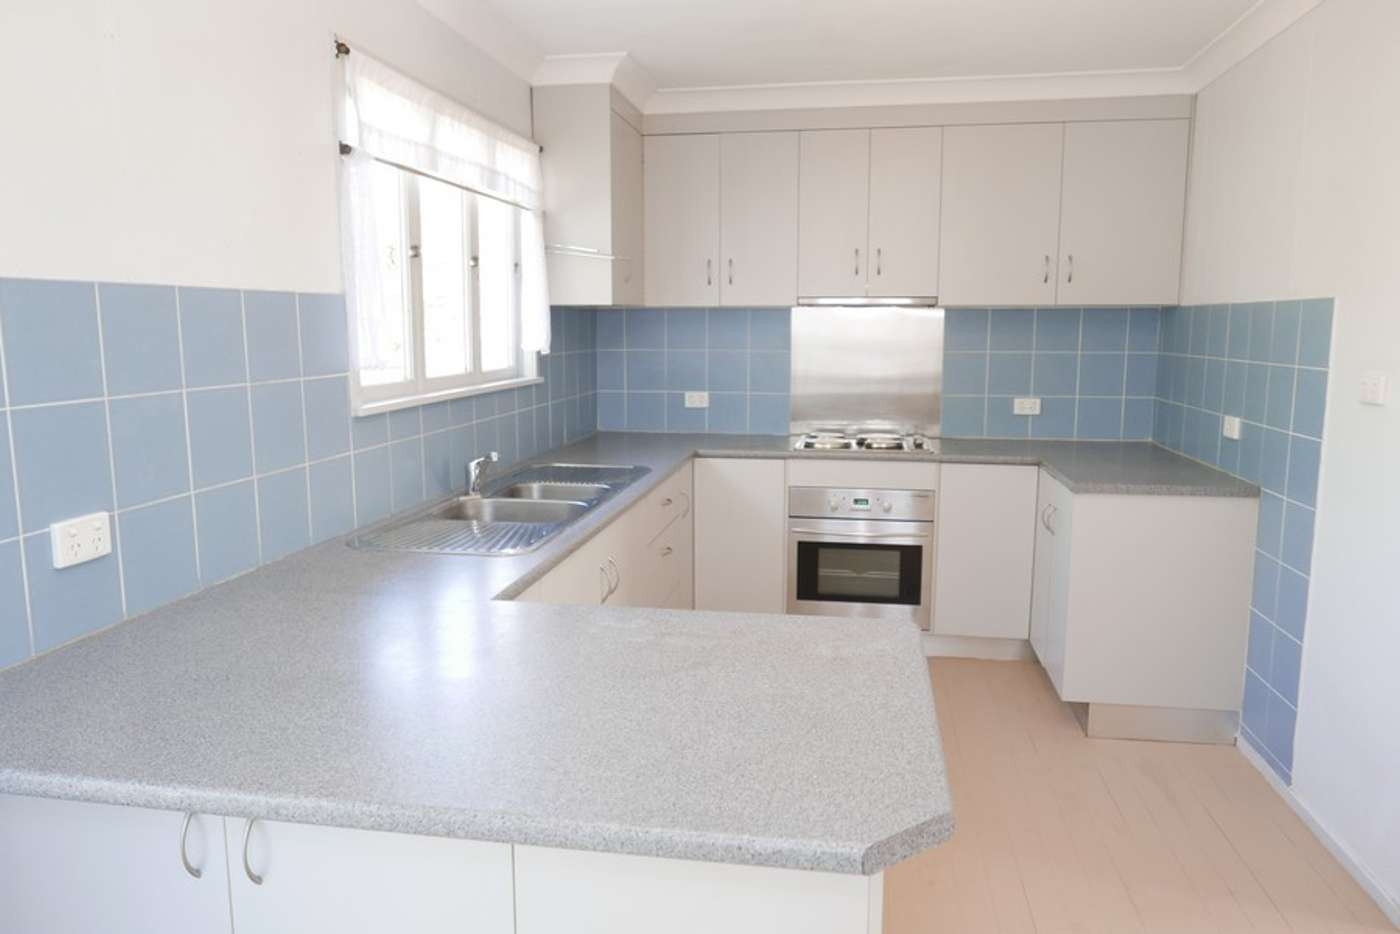 Main view of Homely house listing, 3 Edward Street, Underwood QLD 4119